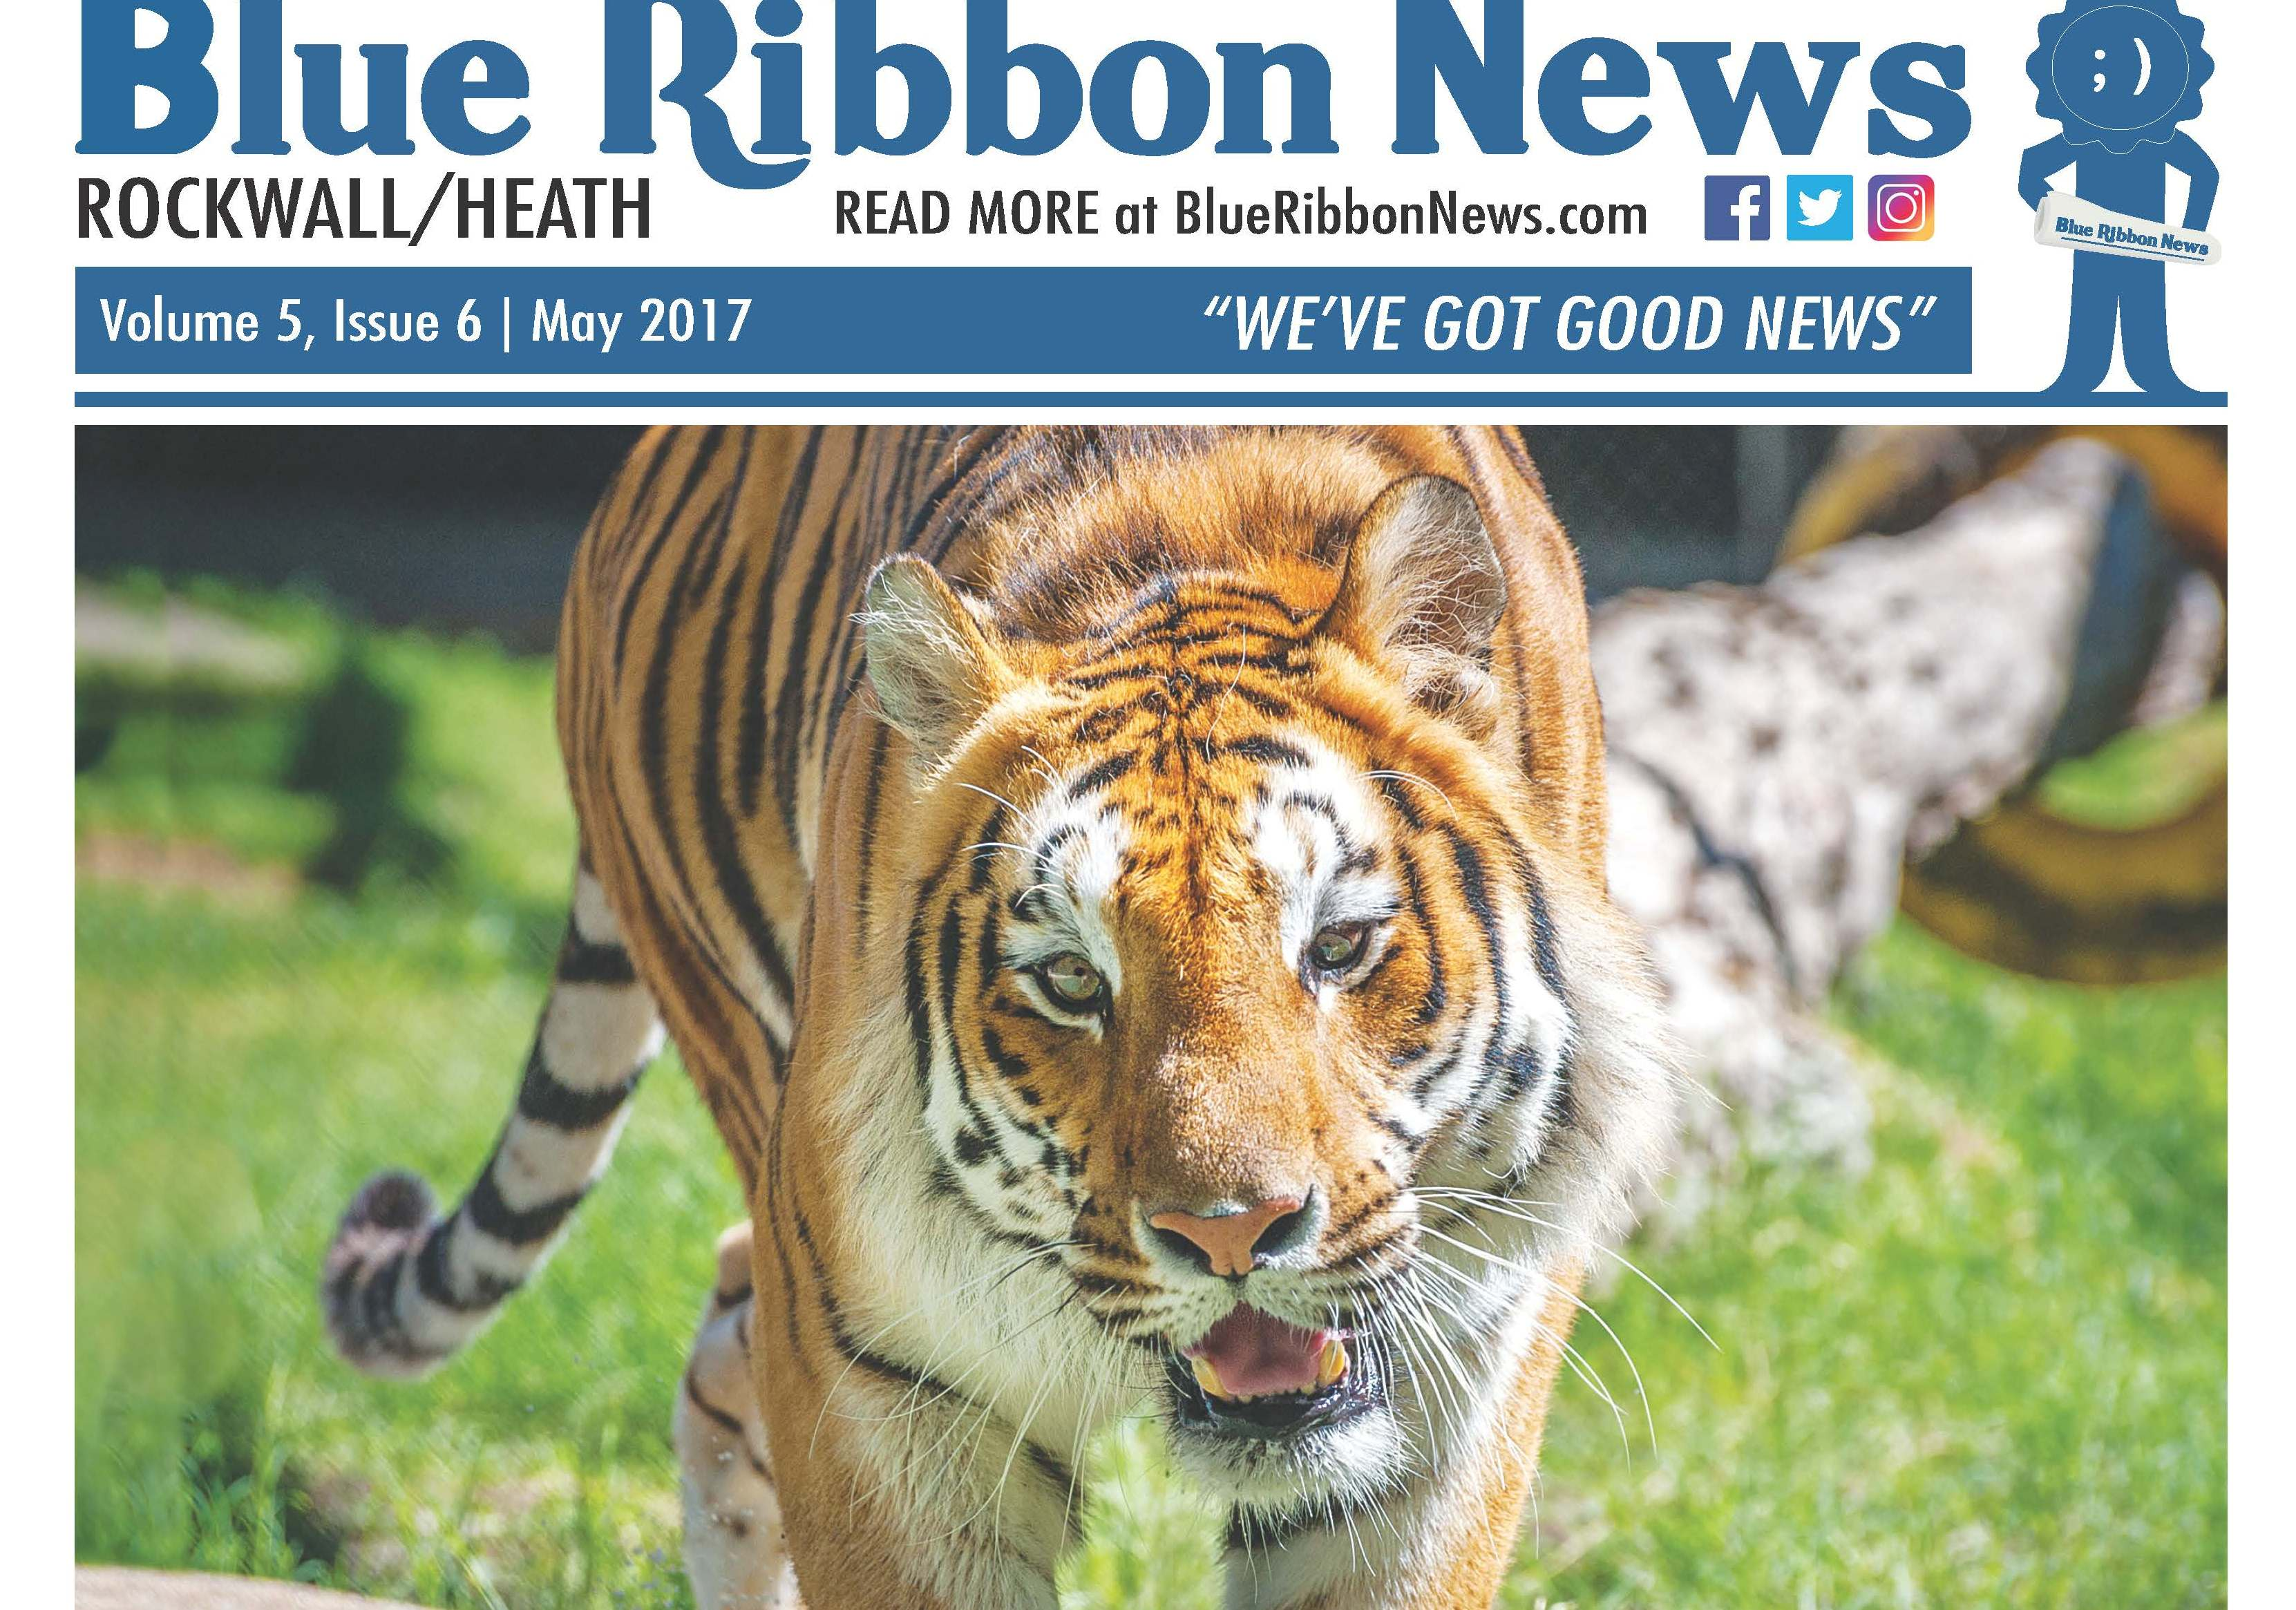 Blue Ribbon News May print edition hits mailboxes throughout Rockwall, Heath